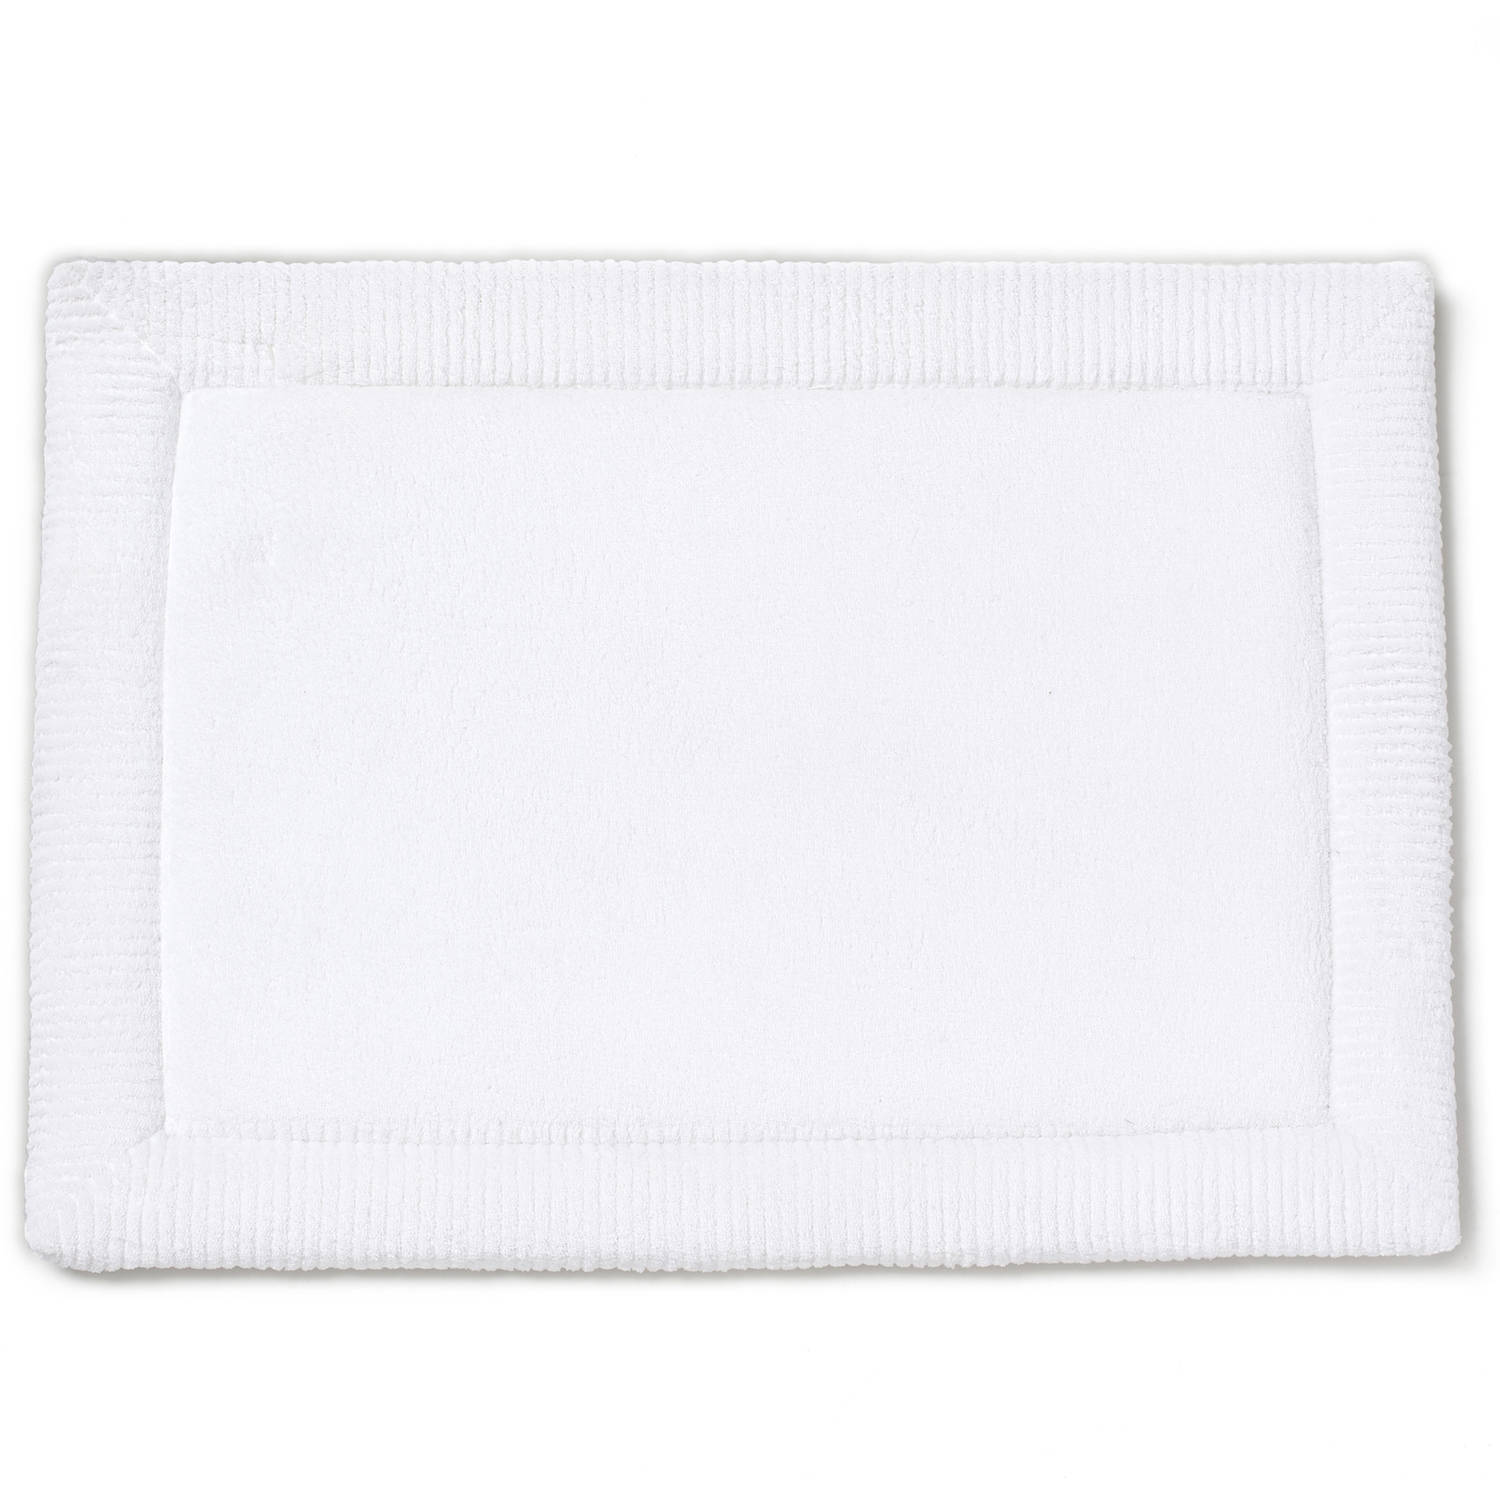 Better Homes And Gardens Comfort Memory Foam Bath Rug, Artic White